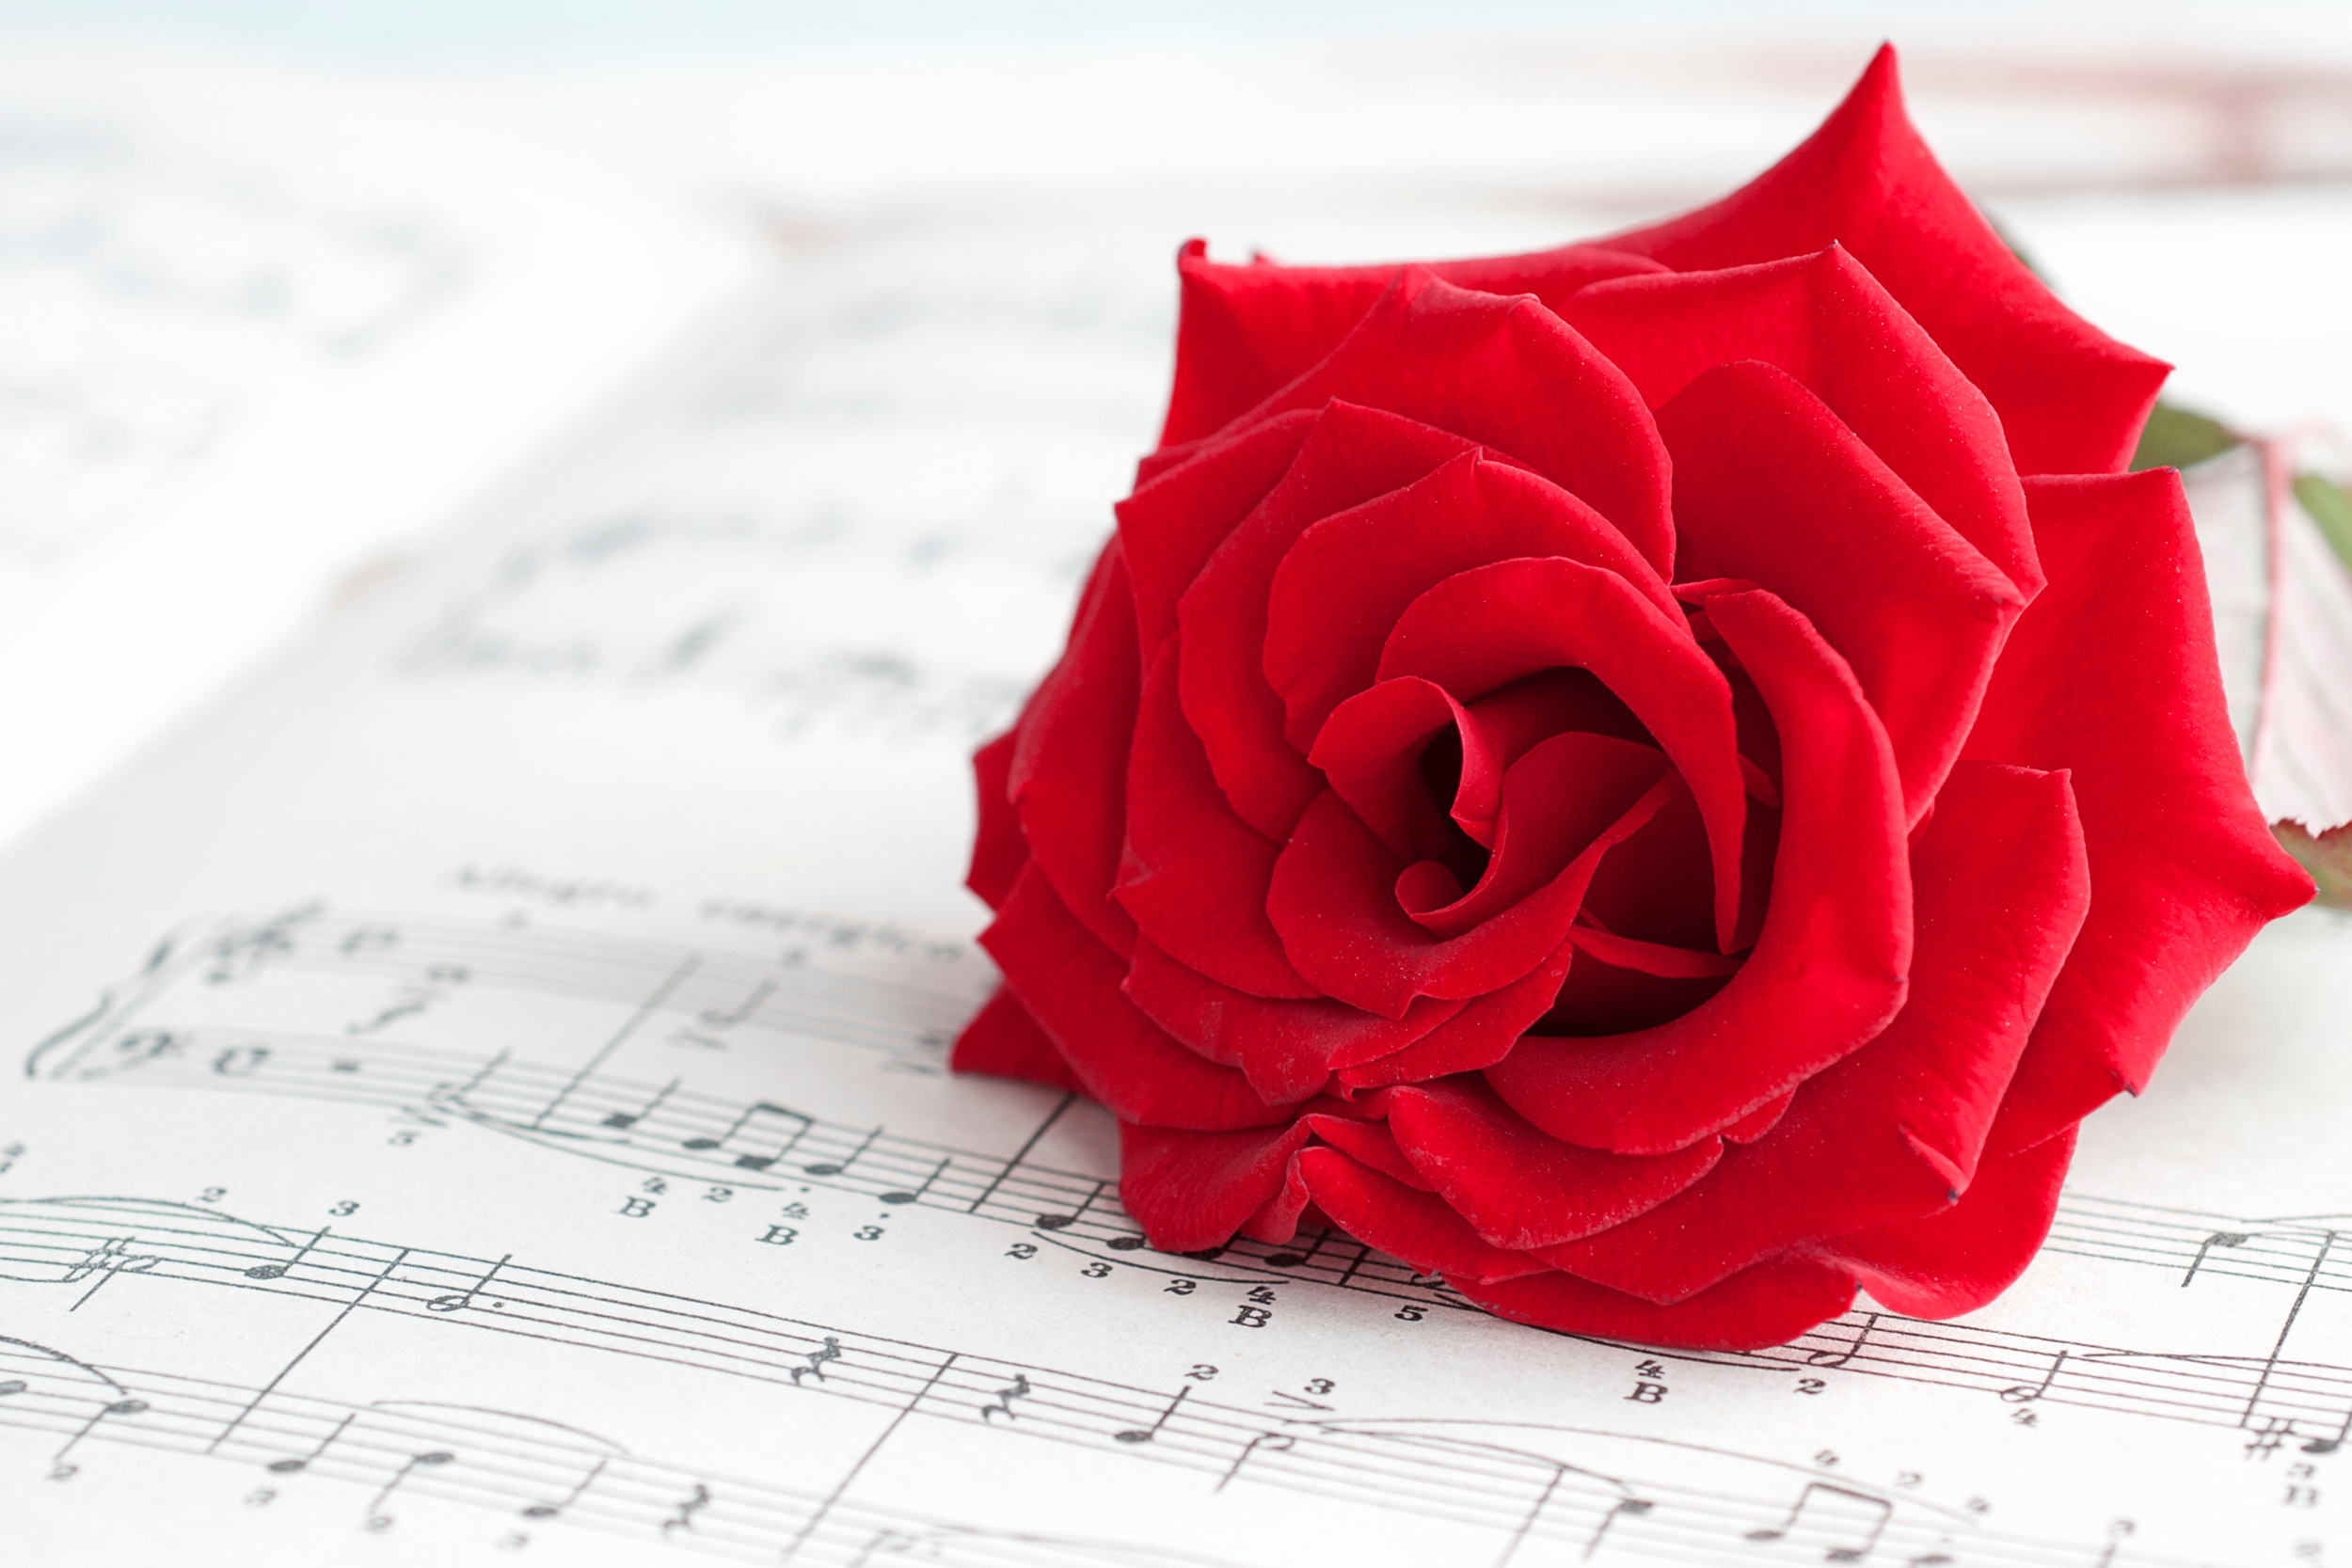 Rose and music photo